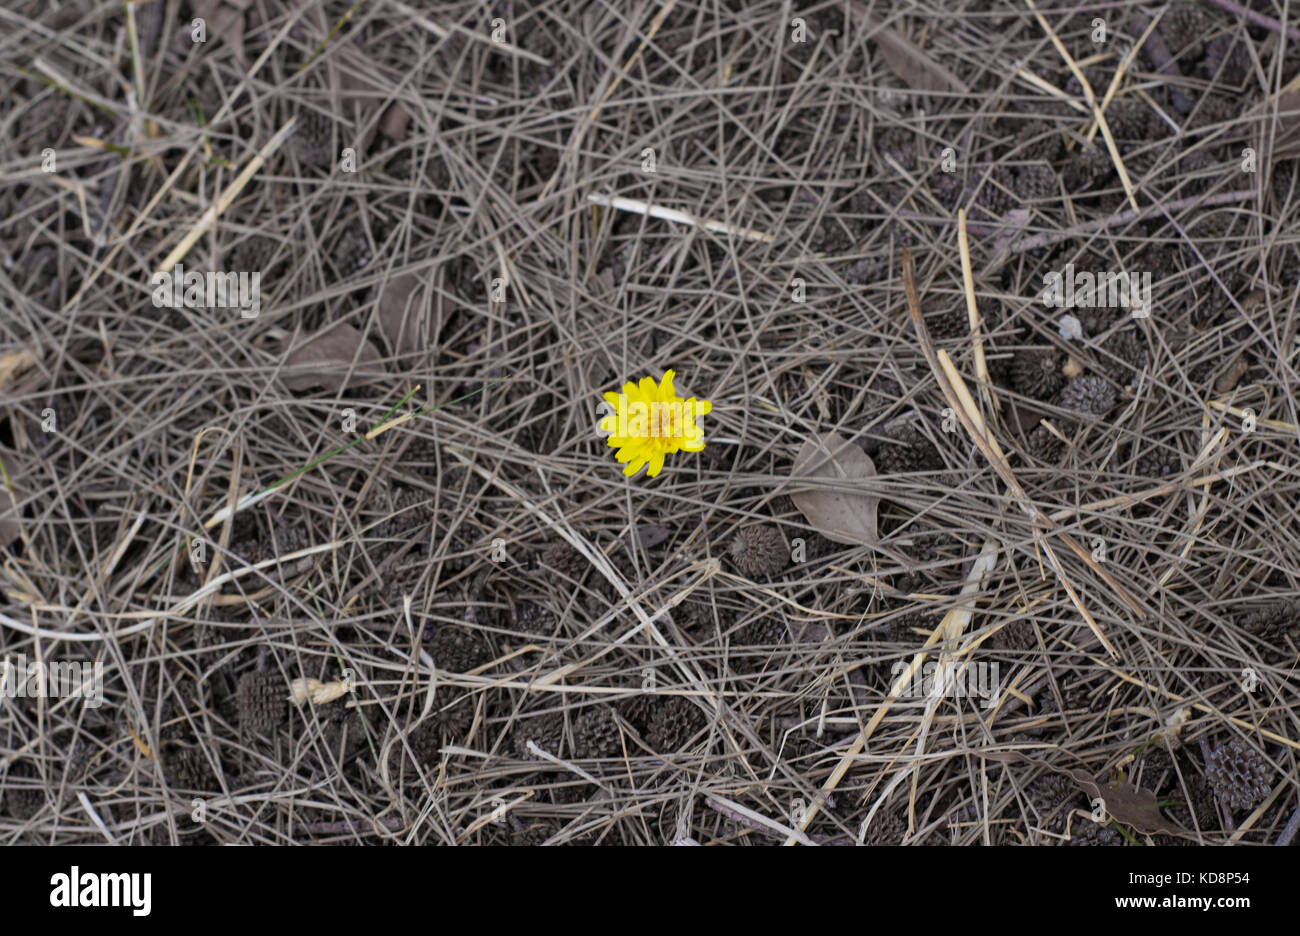 a lonely flower centered on the frame with nothing but only dirt and dead leafs around - Stock Image